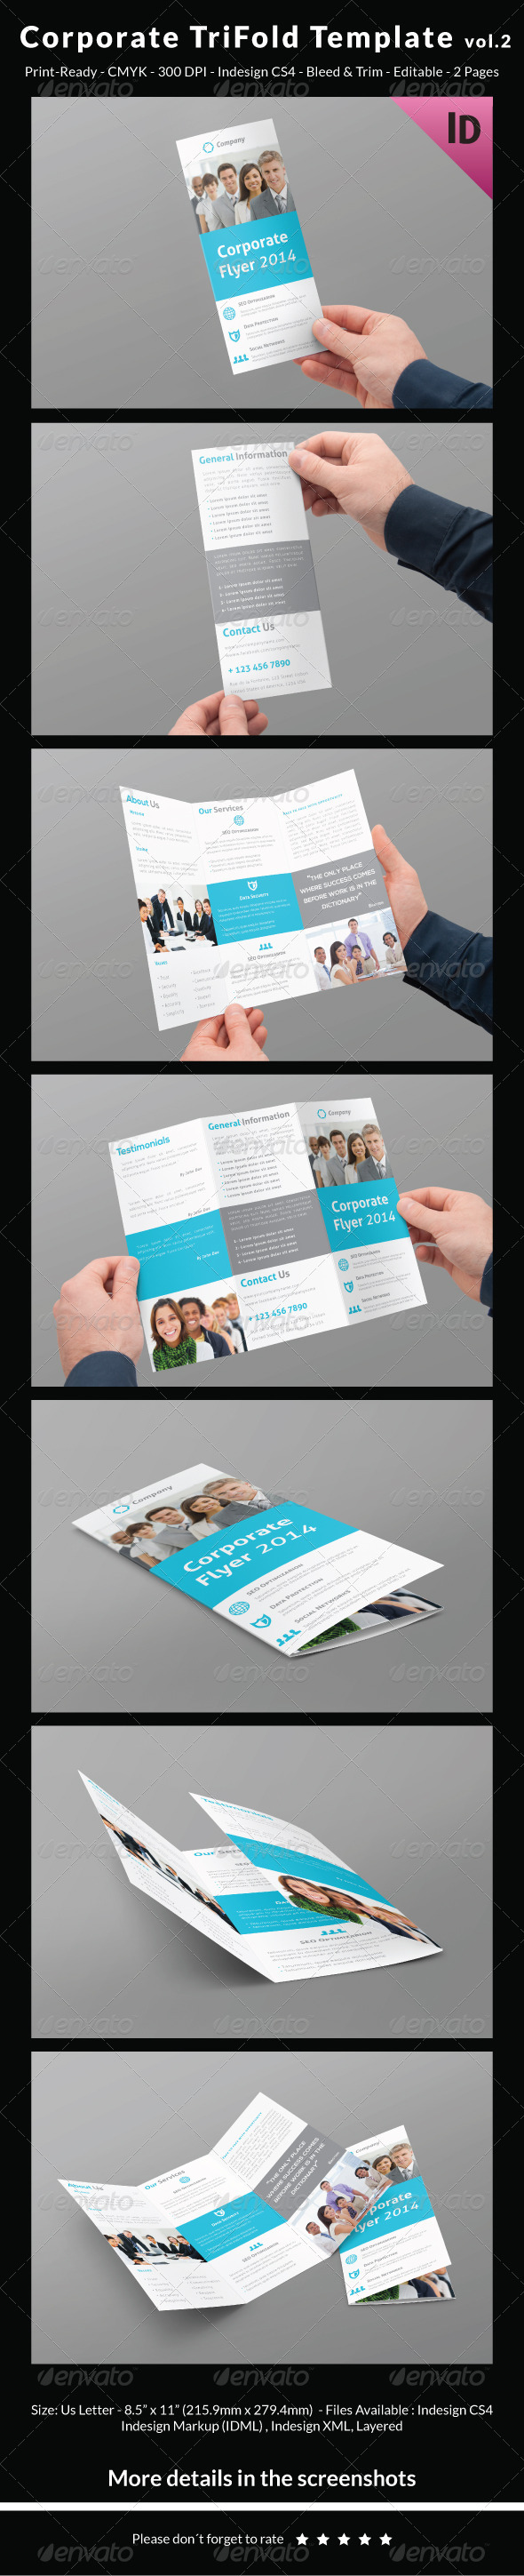 Corporate Trifold Template vol.2 - Corporate Brochures